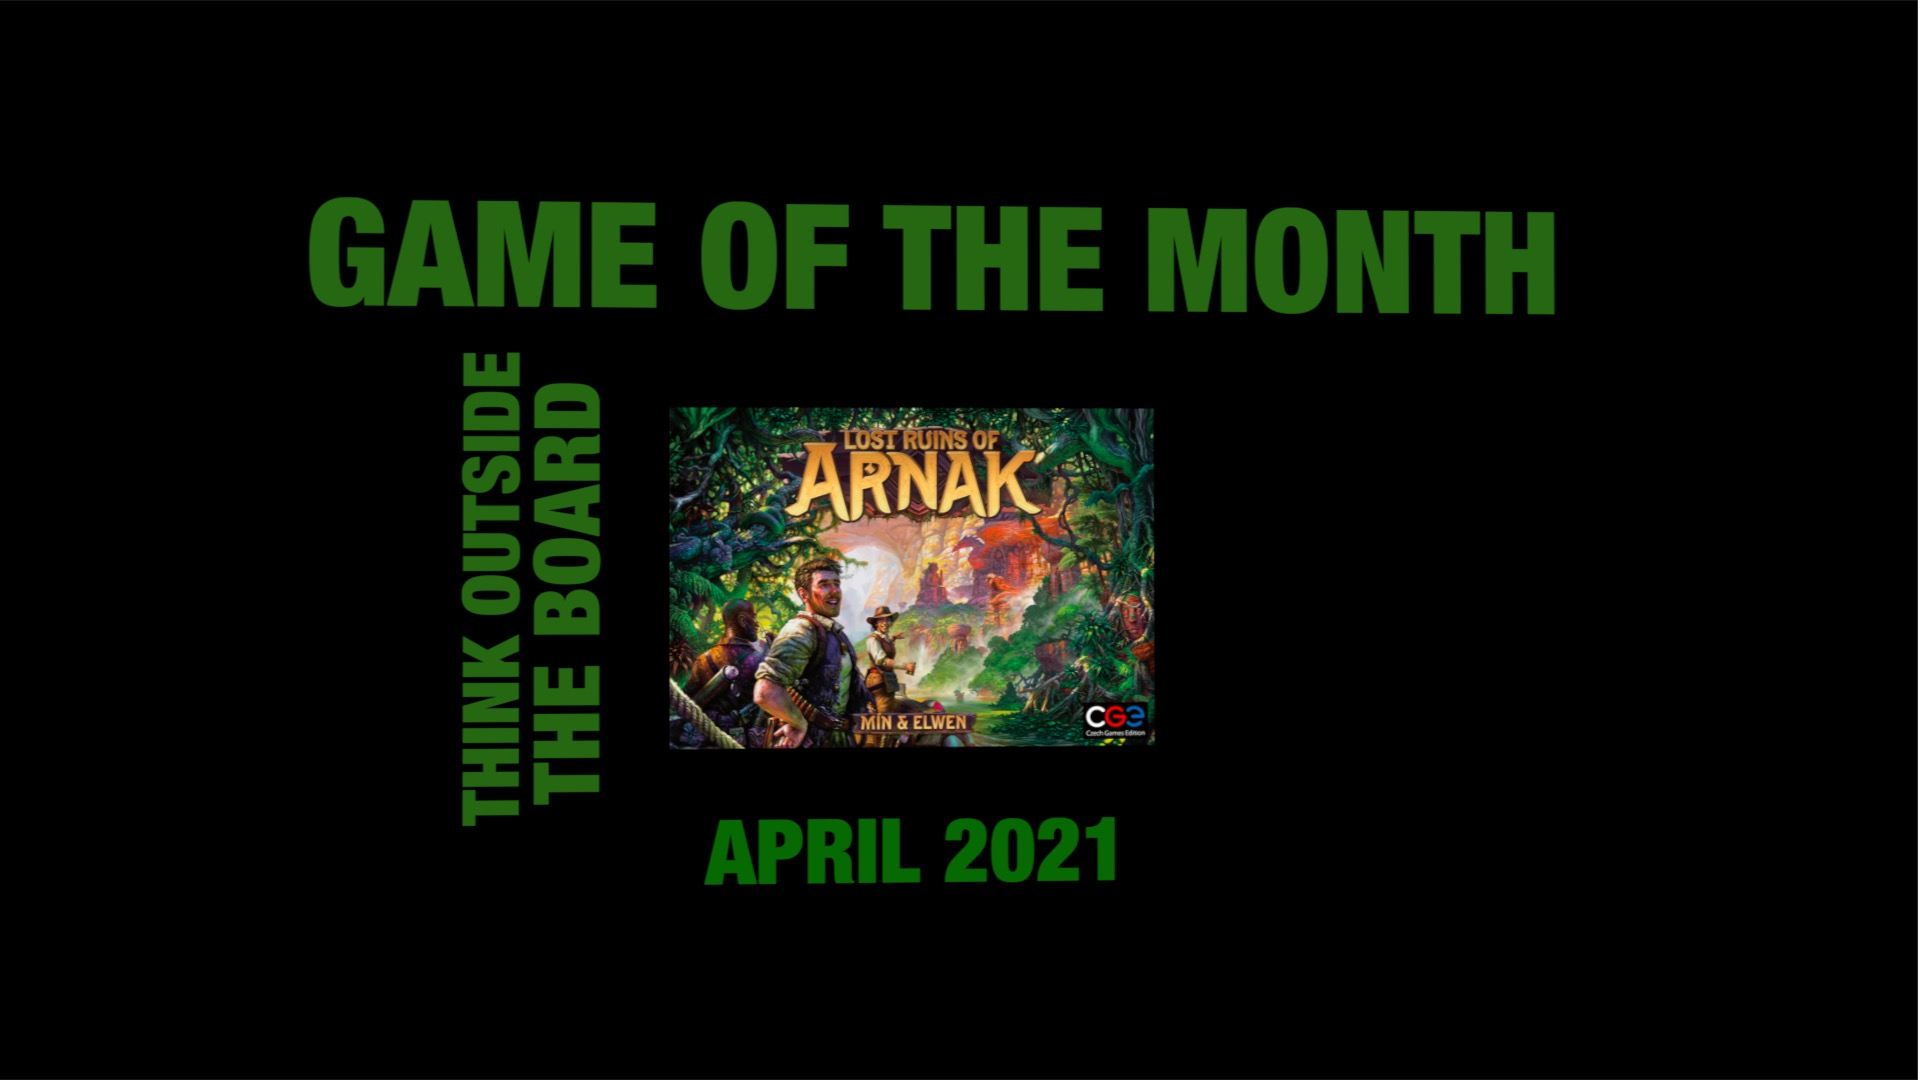 Game of the Month, April 2021